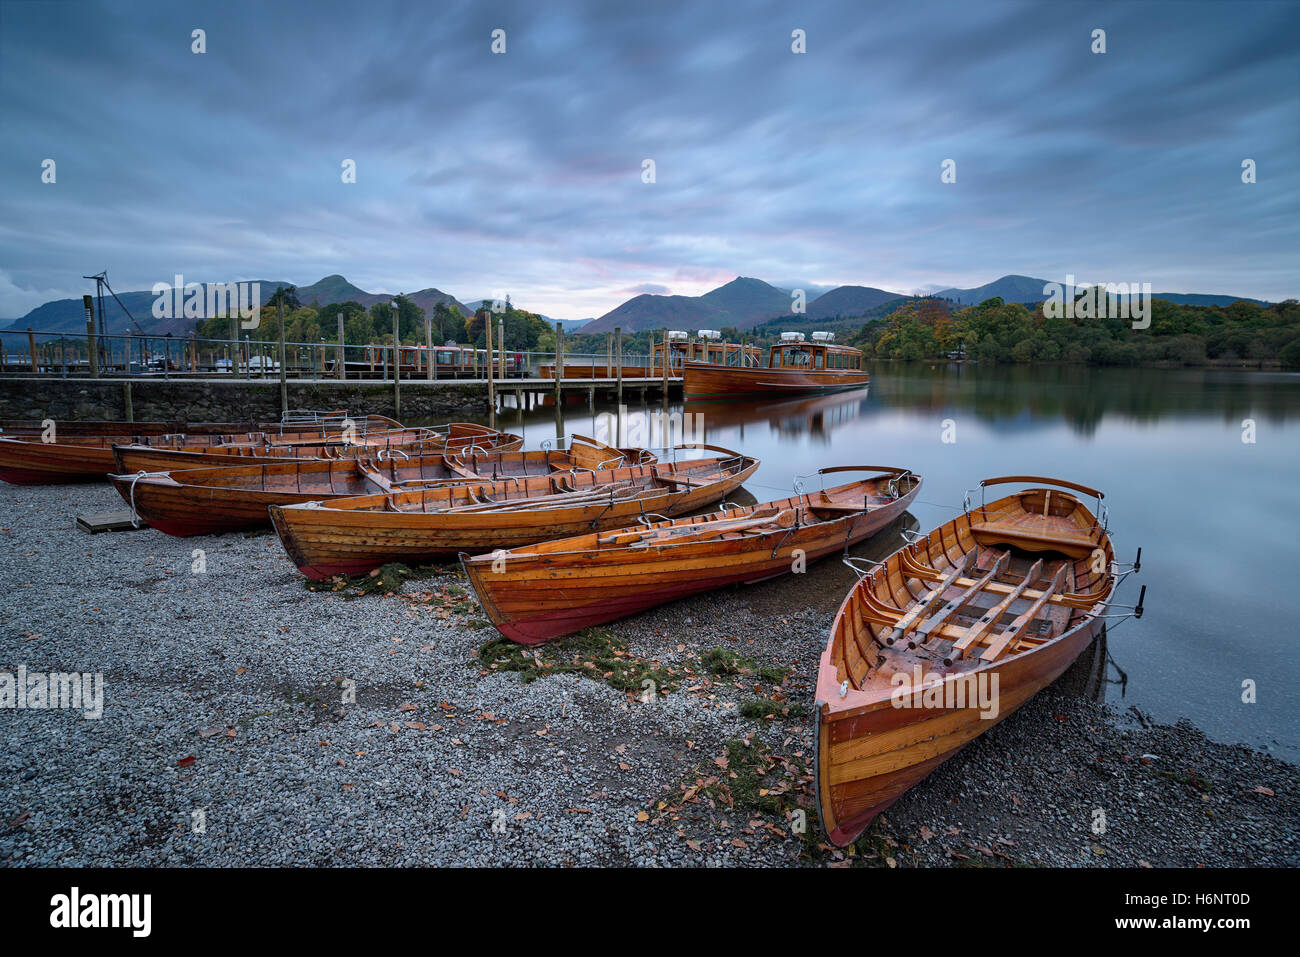 Boats on the shore of Derwentwater at Keswick in the Lake District National Park in Cumbria - Stock Image